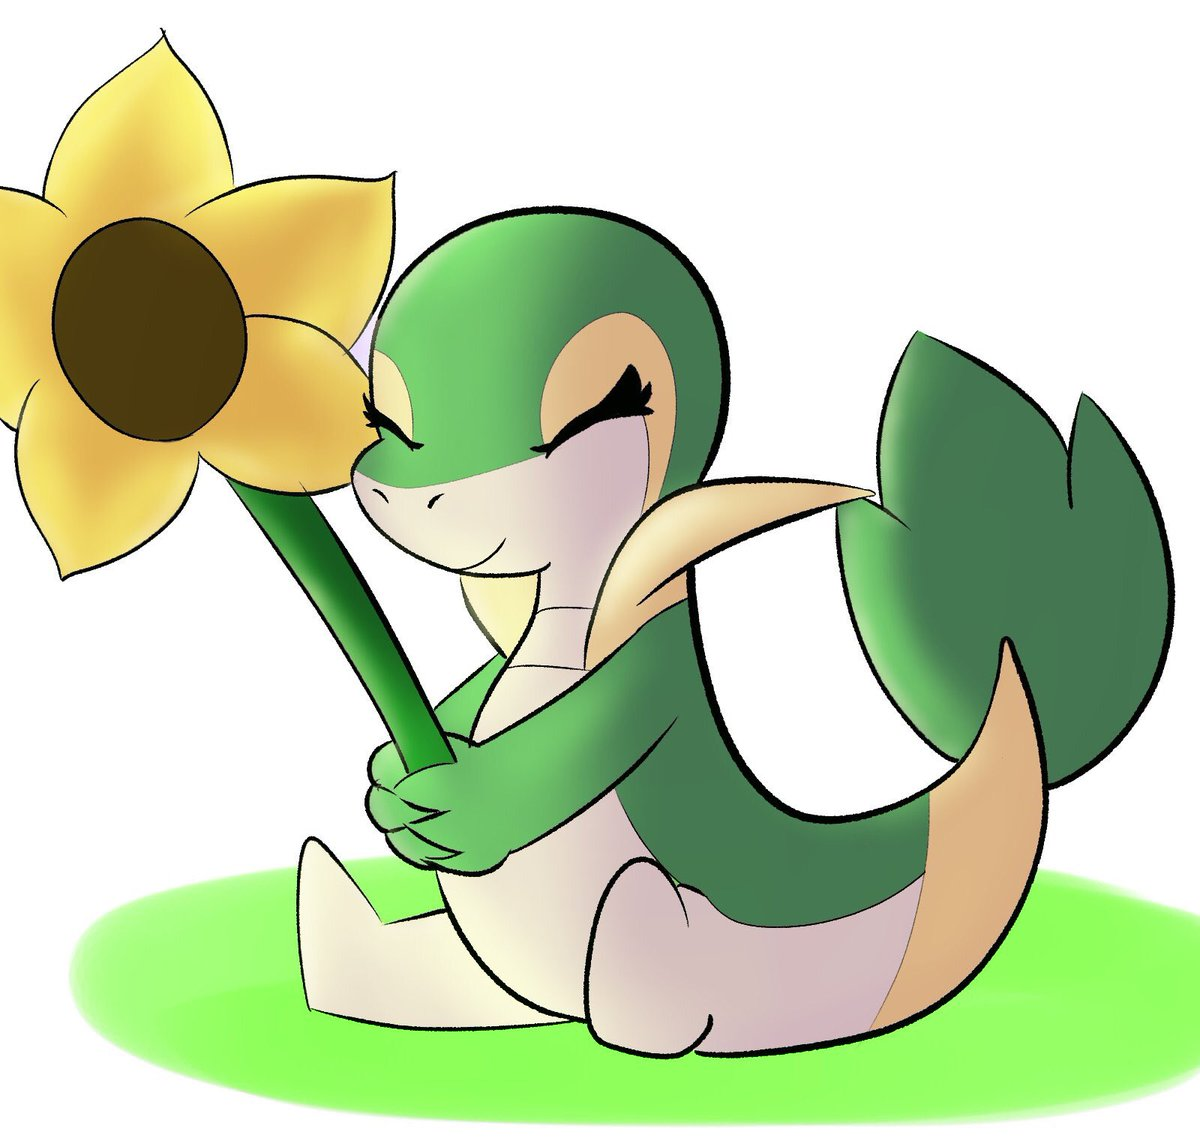 Commission for @pokken300, their snivy is cute!!